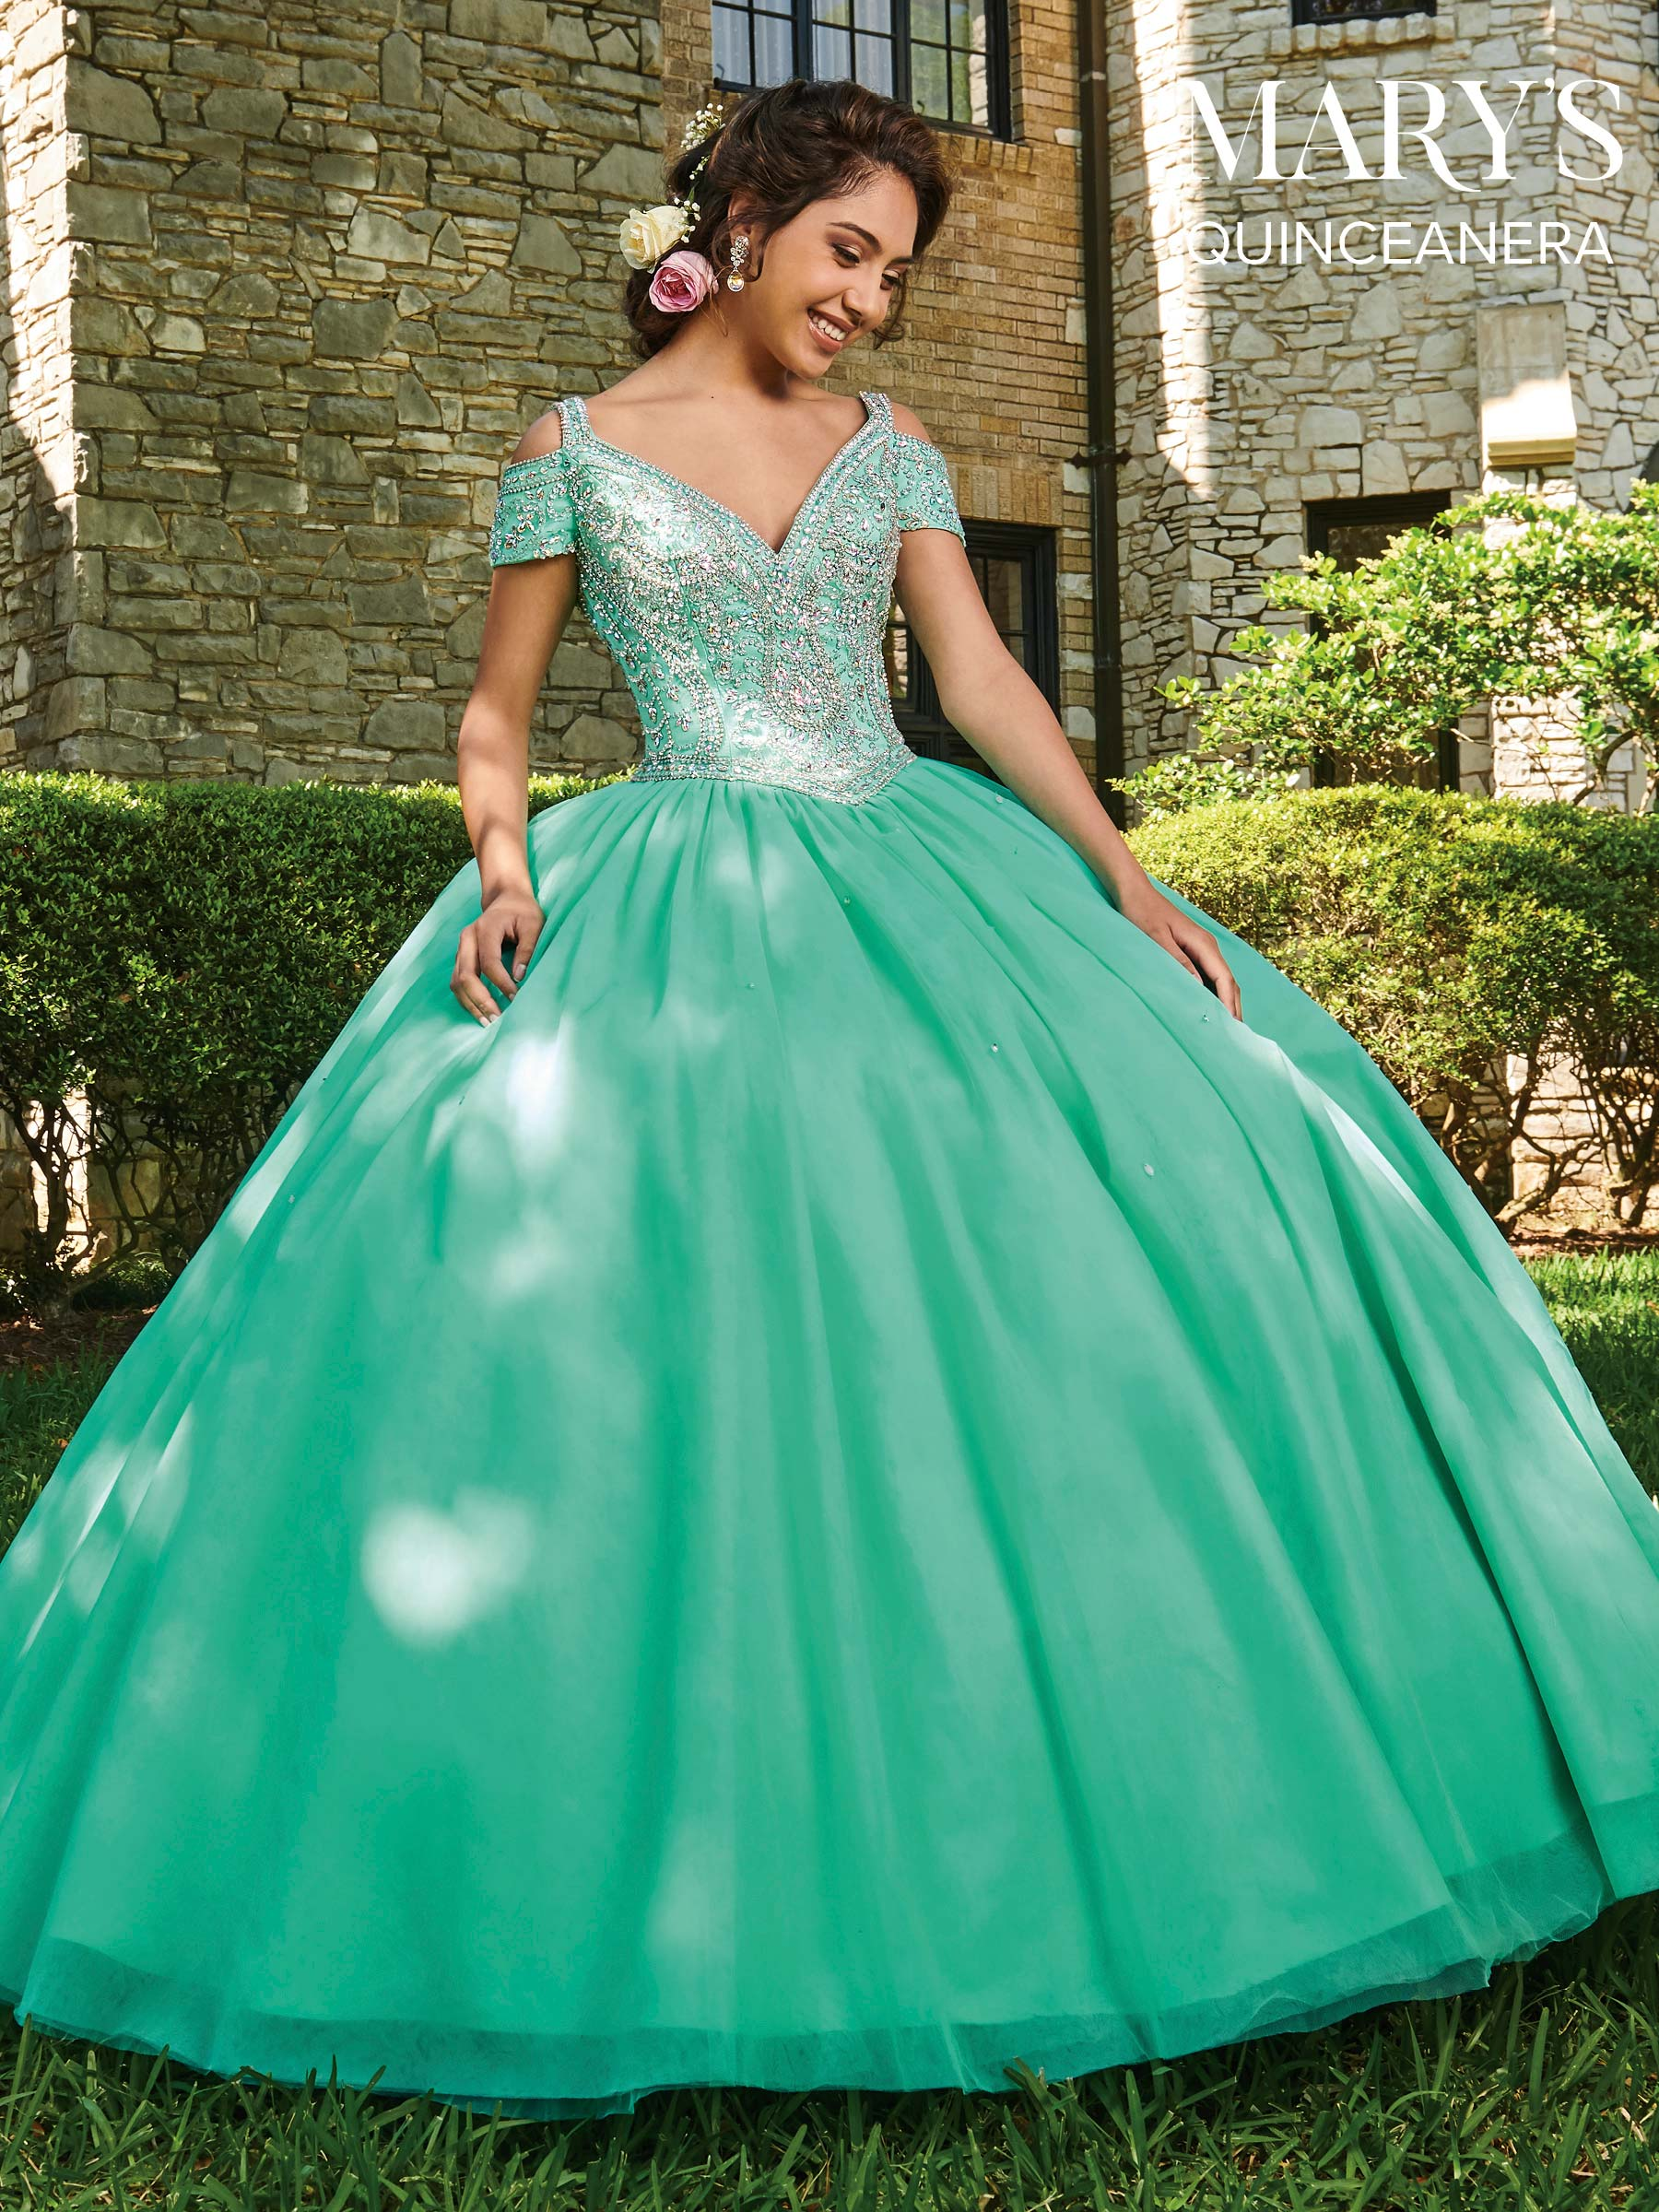 Marys Quinceanera Dresses | Mary's Quinceanera | Style - MQ2026